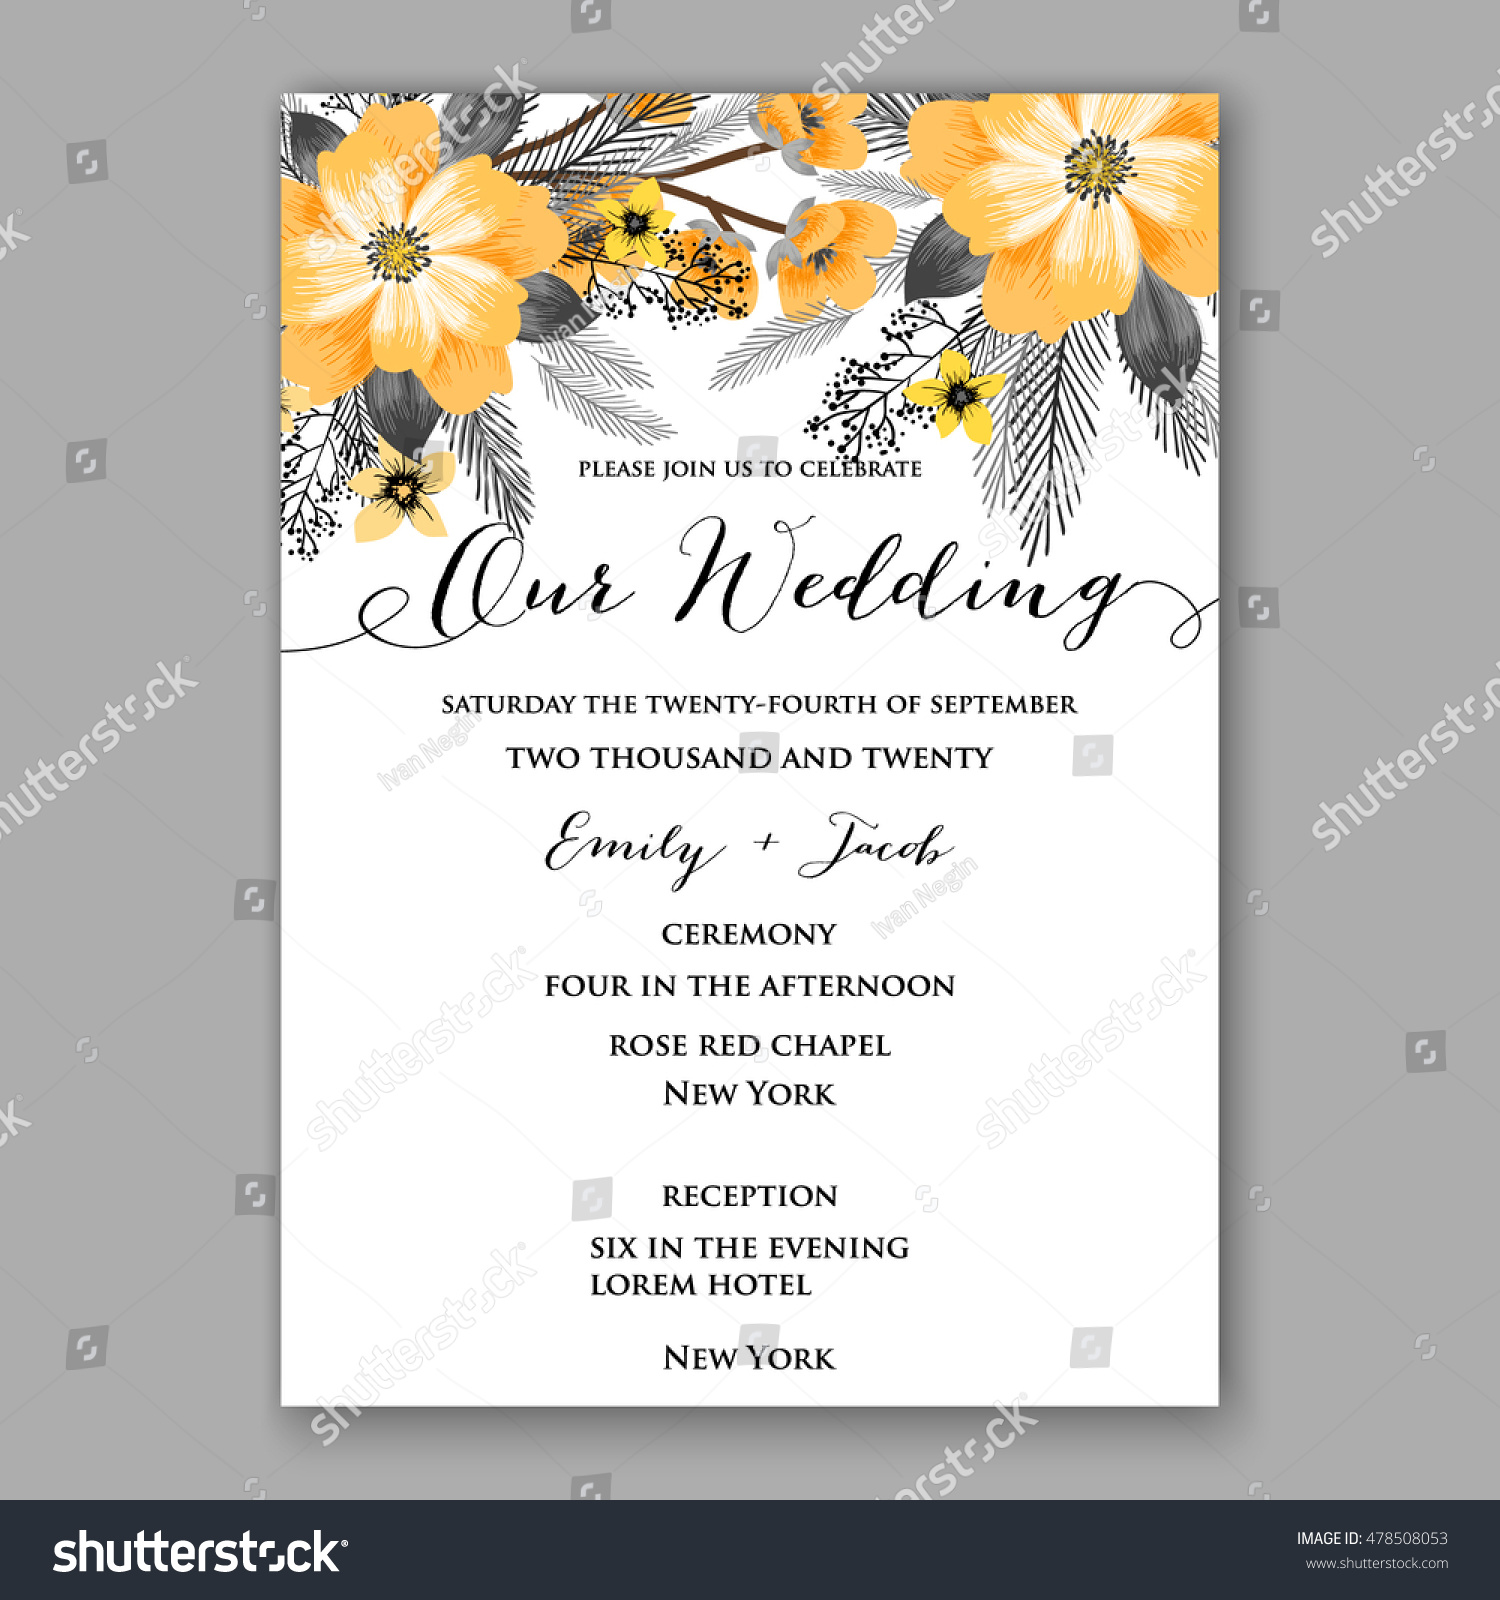 poinsettia wedding invitation sample card beautiful stock vector poinsettia wedding invitation sample card beautiful winter floral or nt christmas party wreath poinsettia pine branch